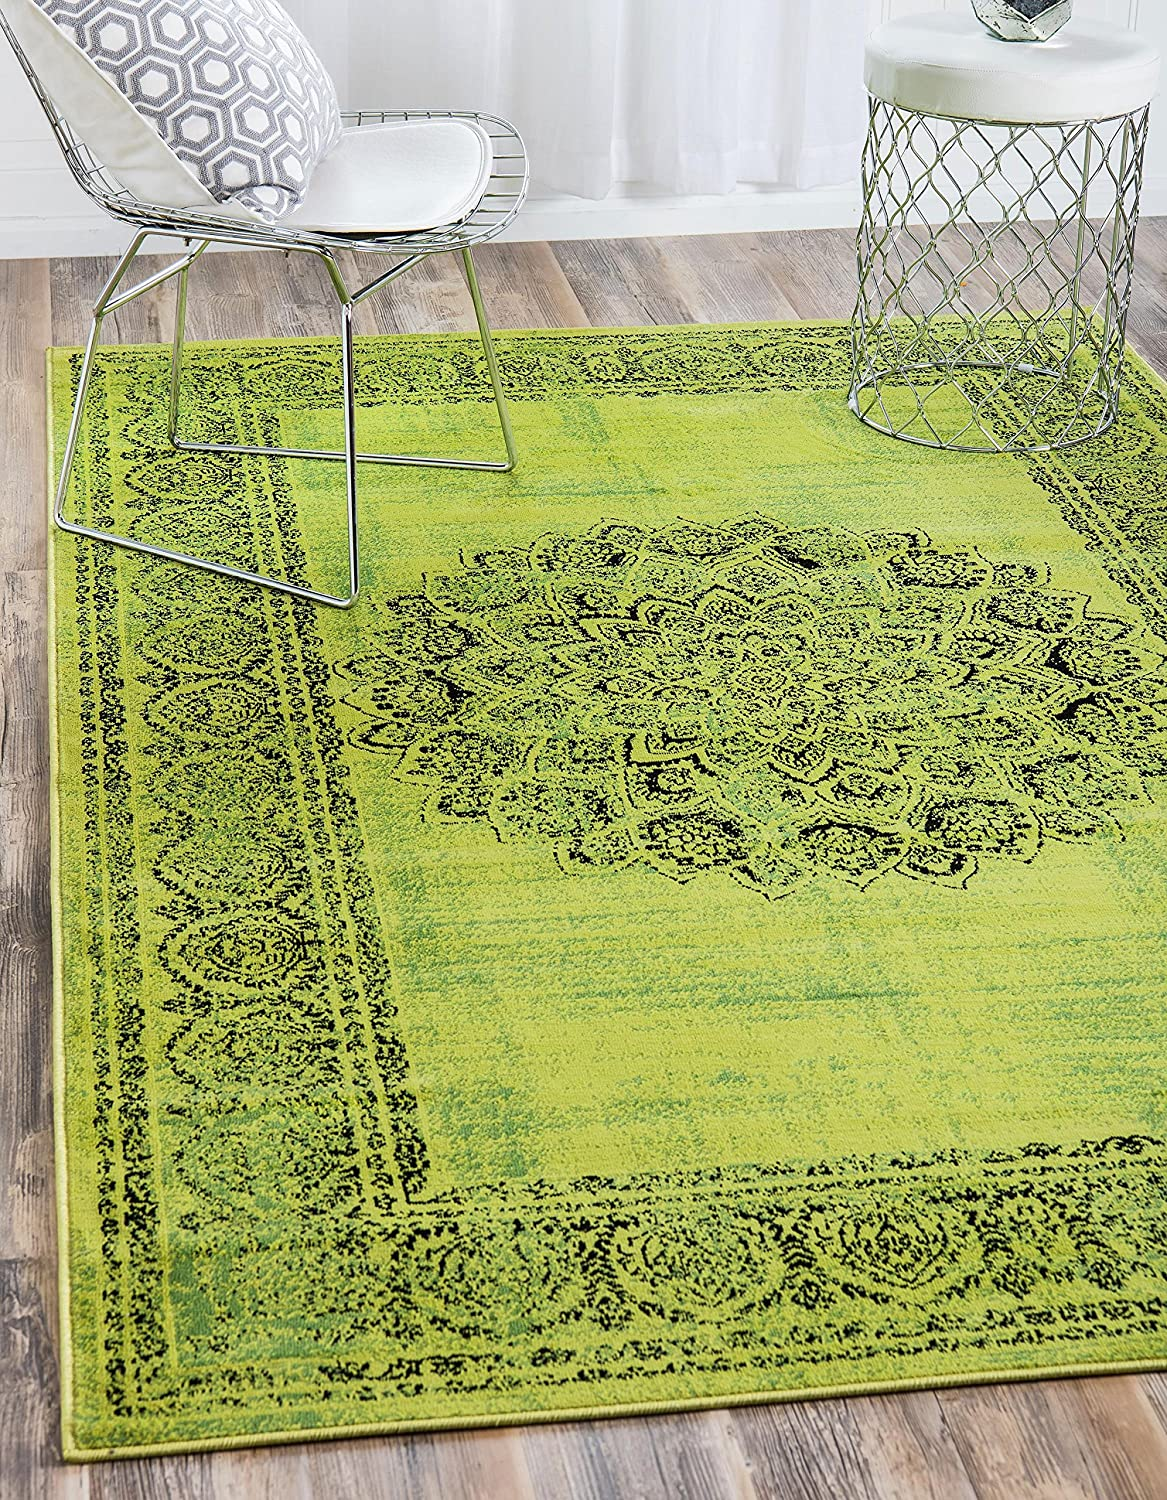 Unique Loom Imperial Collection Modern Traditional Vintage Distressed Sage Green Area Rug (5' 0 x 8' 0)